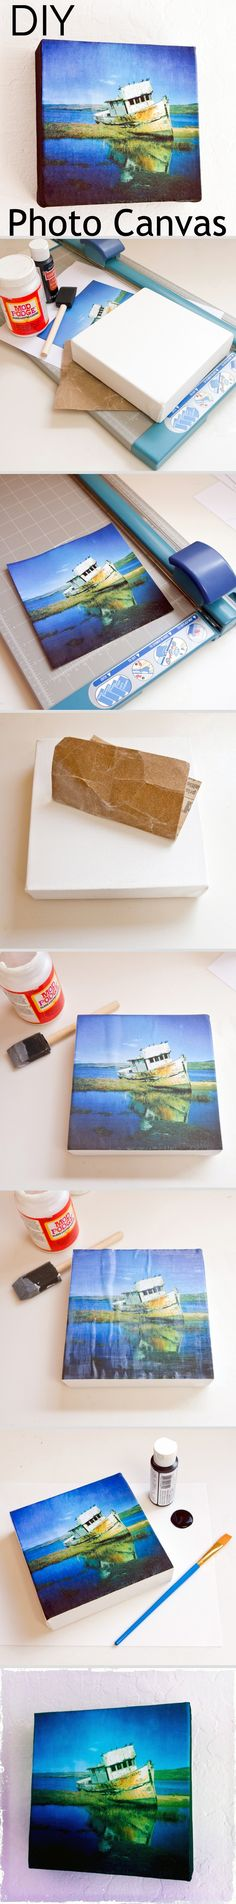 Diy photo canvas. I run a blog with DIY&tutorials about everything: Hair, nail, make-up, clothes, baking, decorations and much more! My blog adress is: tuwws.blogspot.se